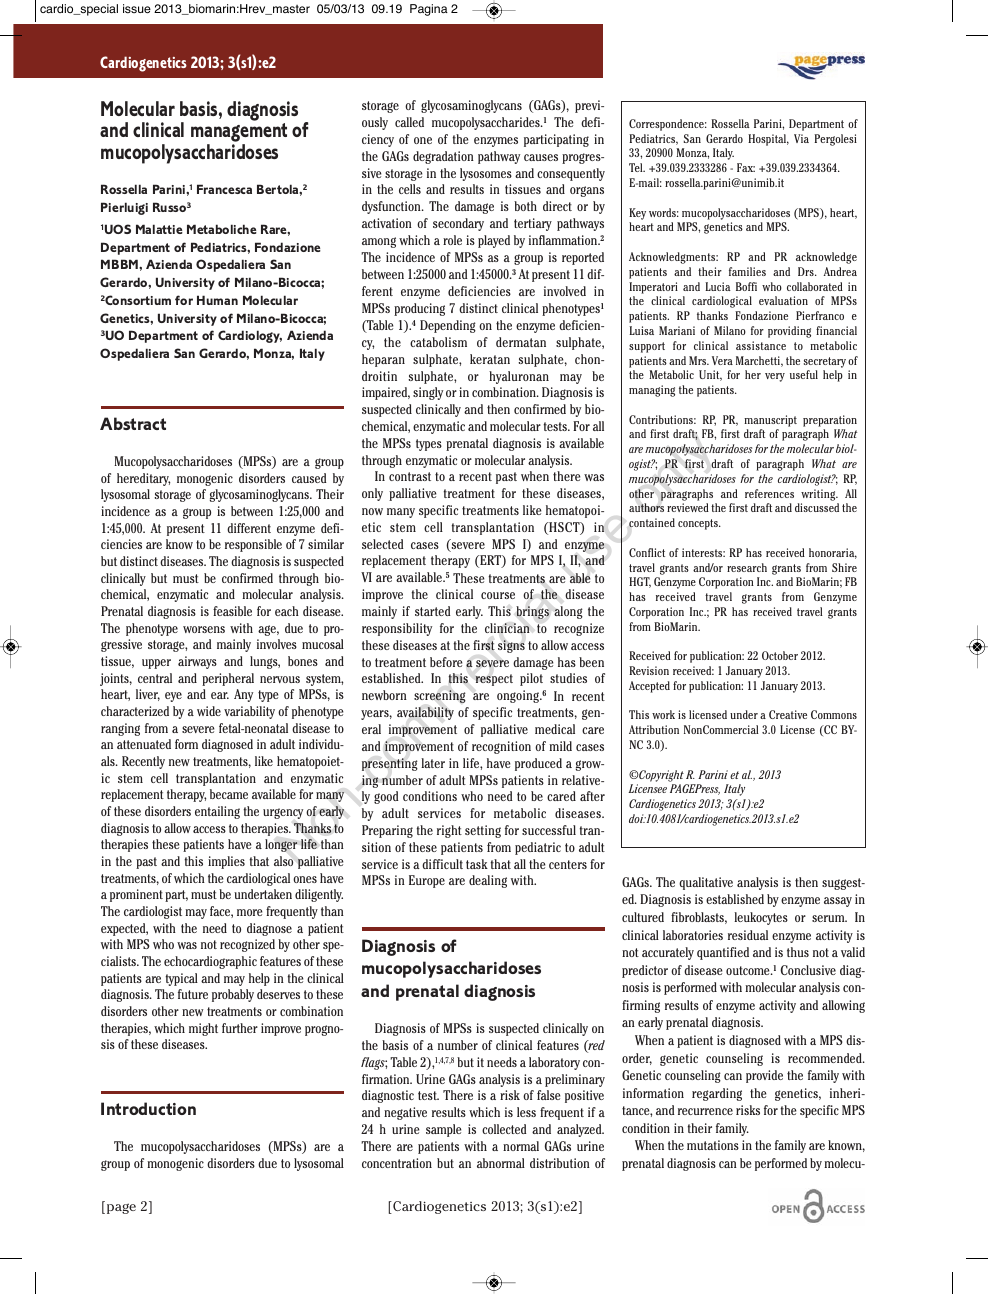 Molecular basis, diagnosis and clinical management of